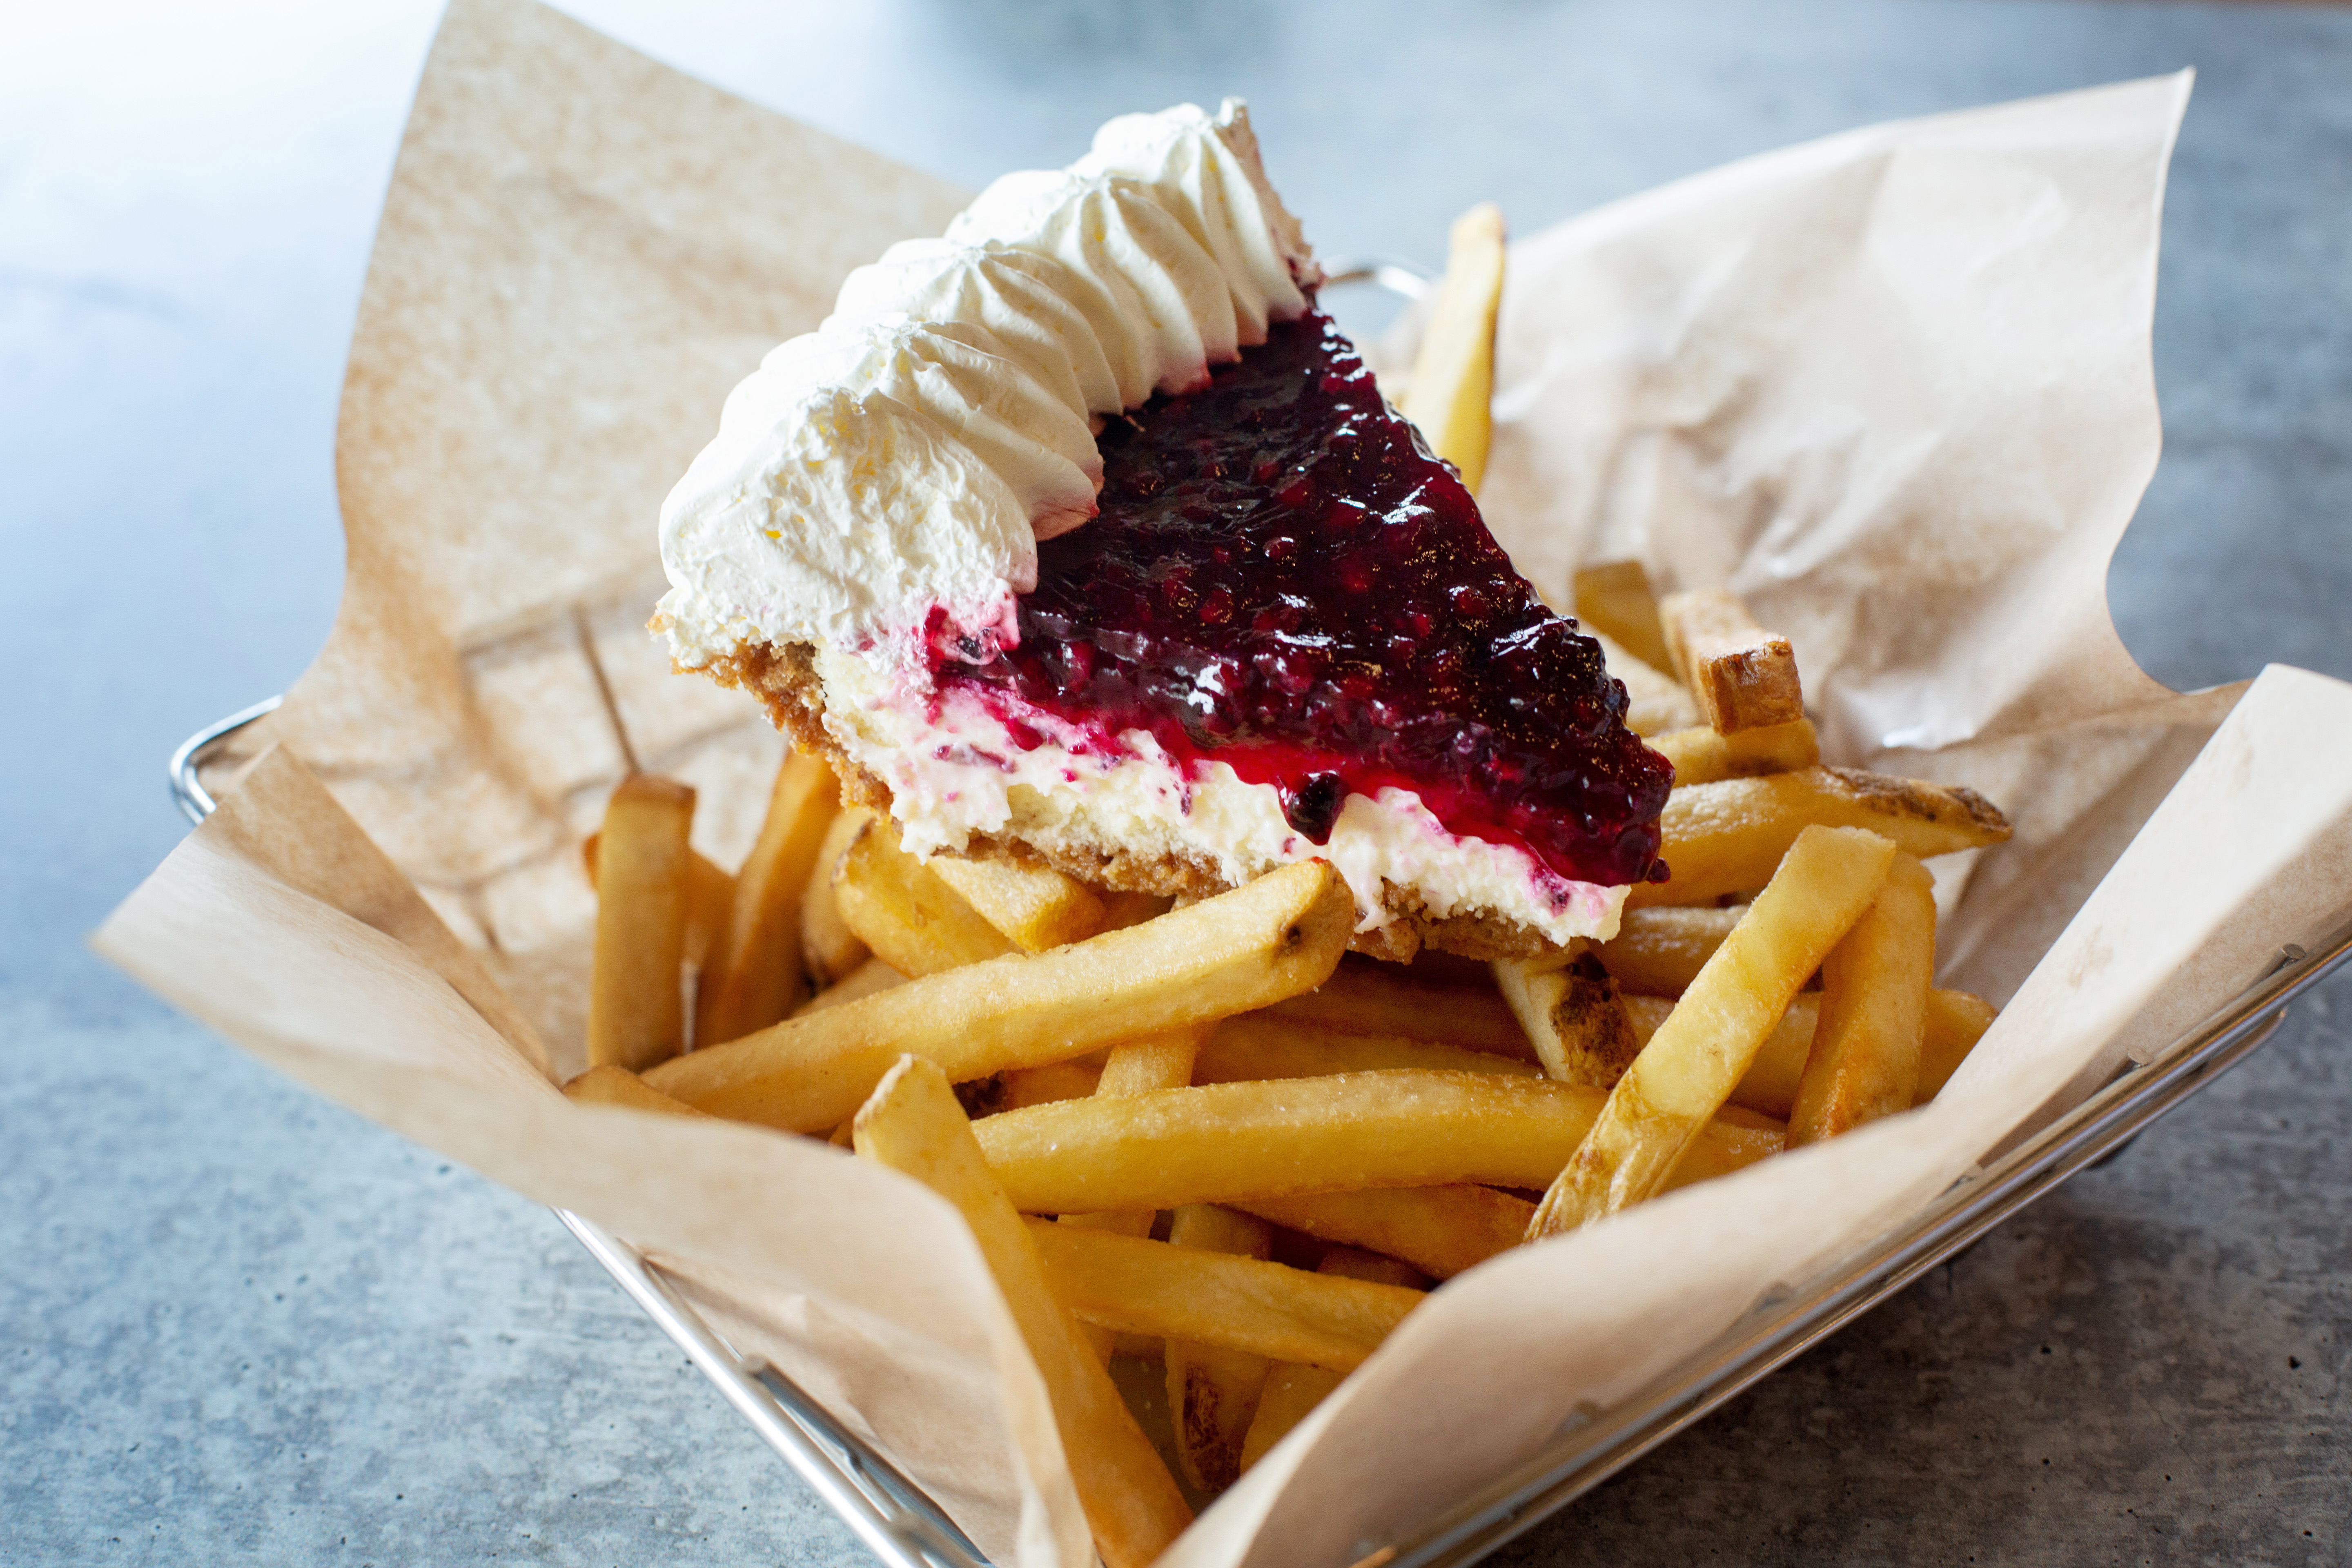 Shari's Fries on Pies. Celebrate national French Fry Day, Saturday 7/12/2019